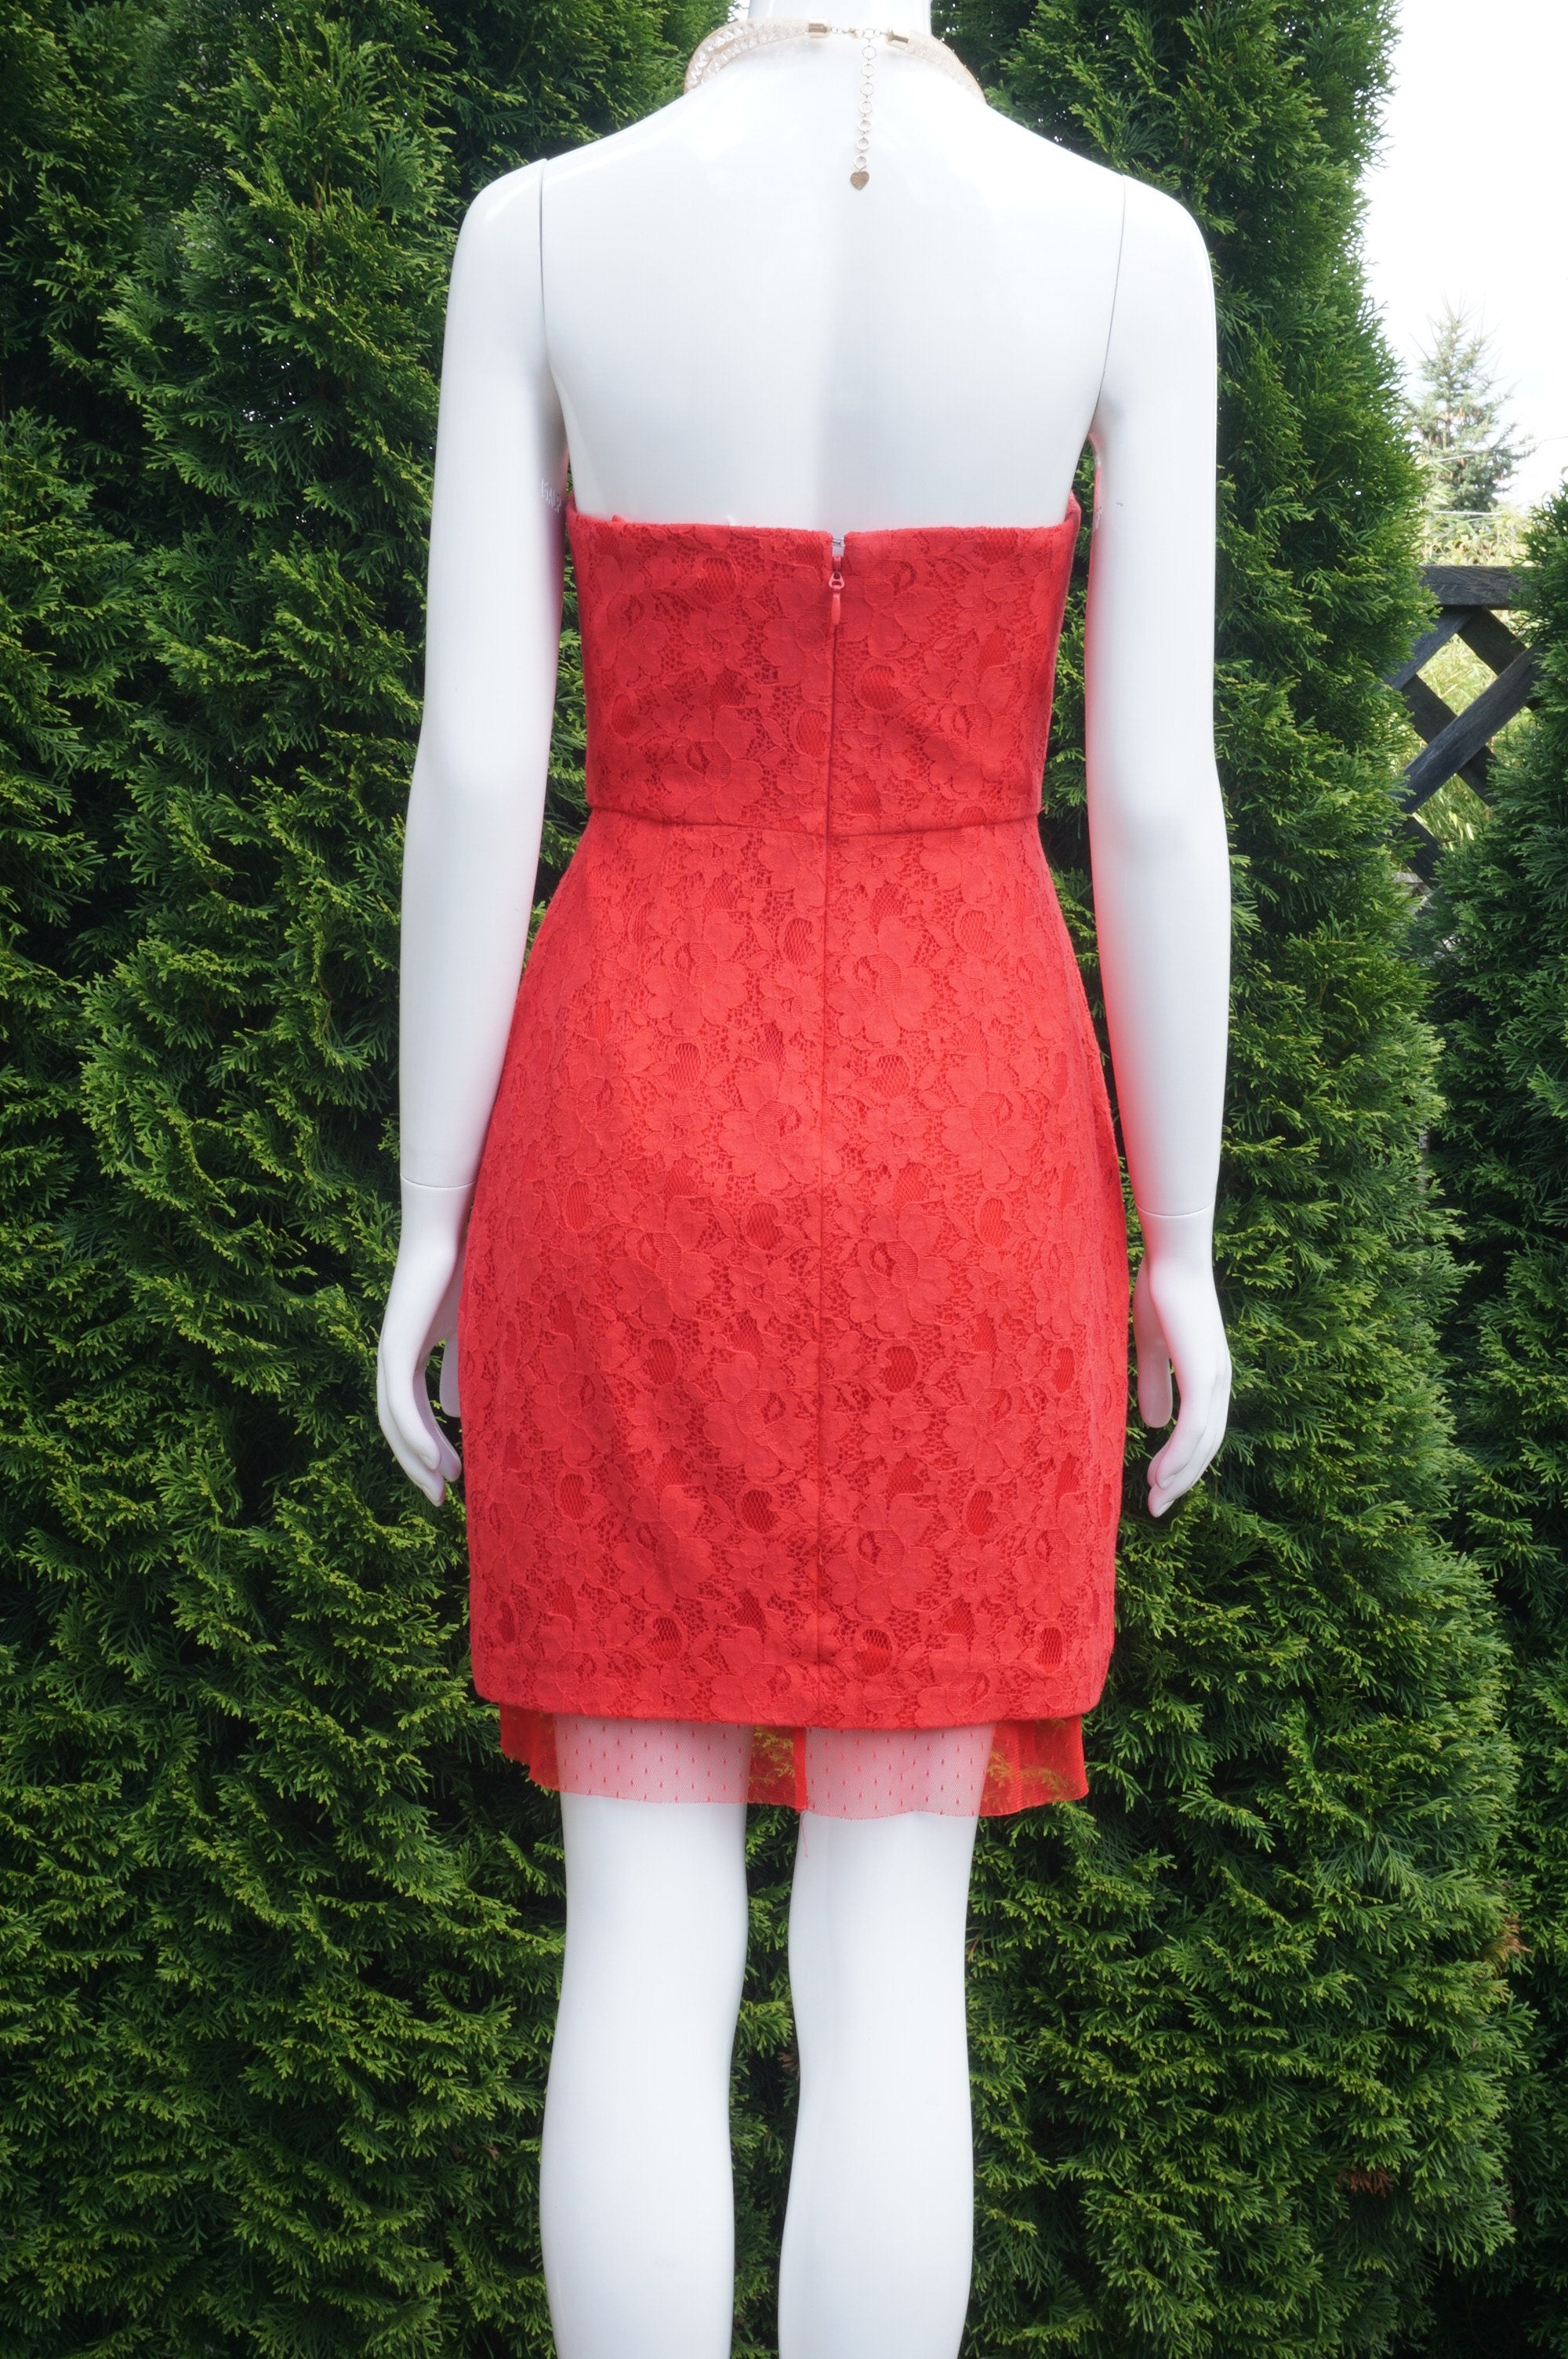 BCBGMAXAZRIA Red Lace Strapless Mini Dress,  Bust 33 inches, waist 26 inches, length 30 inches. Sticky liner inside of bra cups for added security. Zipper in back., Red, Shell: 77% Cotton, 23% Nylon. Lining: 100% Polyester, women's Dresses & Rompers, women's Red Dresses & Rompers, BCBGMAXAZRIA women's Dresses & Rompers, Mini dress, lace dress, strapless dress, cocktail dress